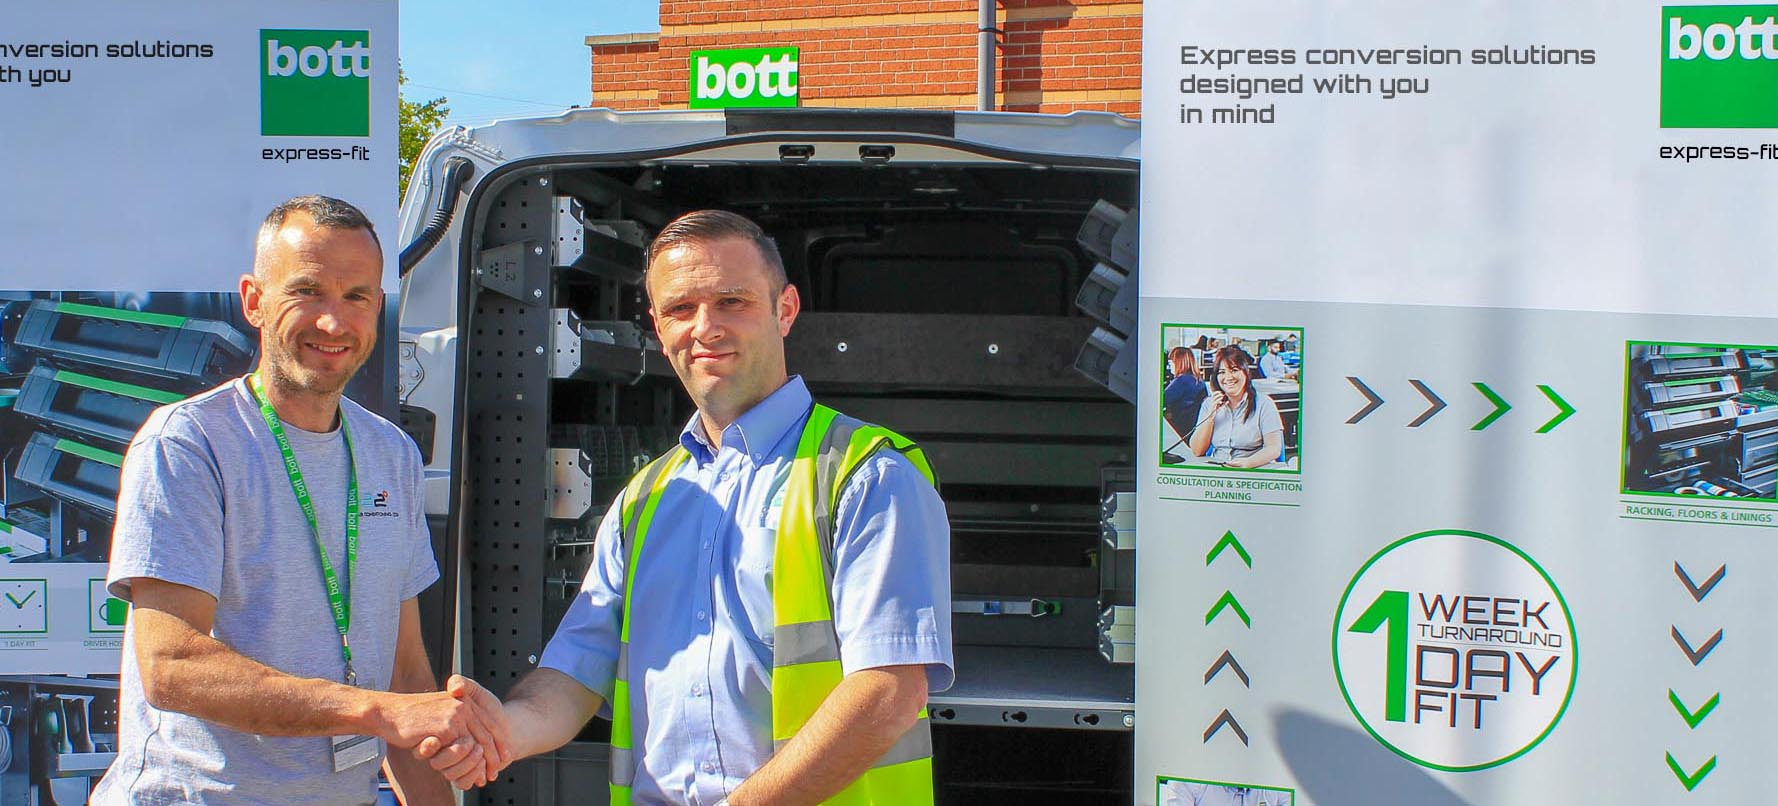 Bott showcases new Express-fit service at Love Business Expo